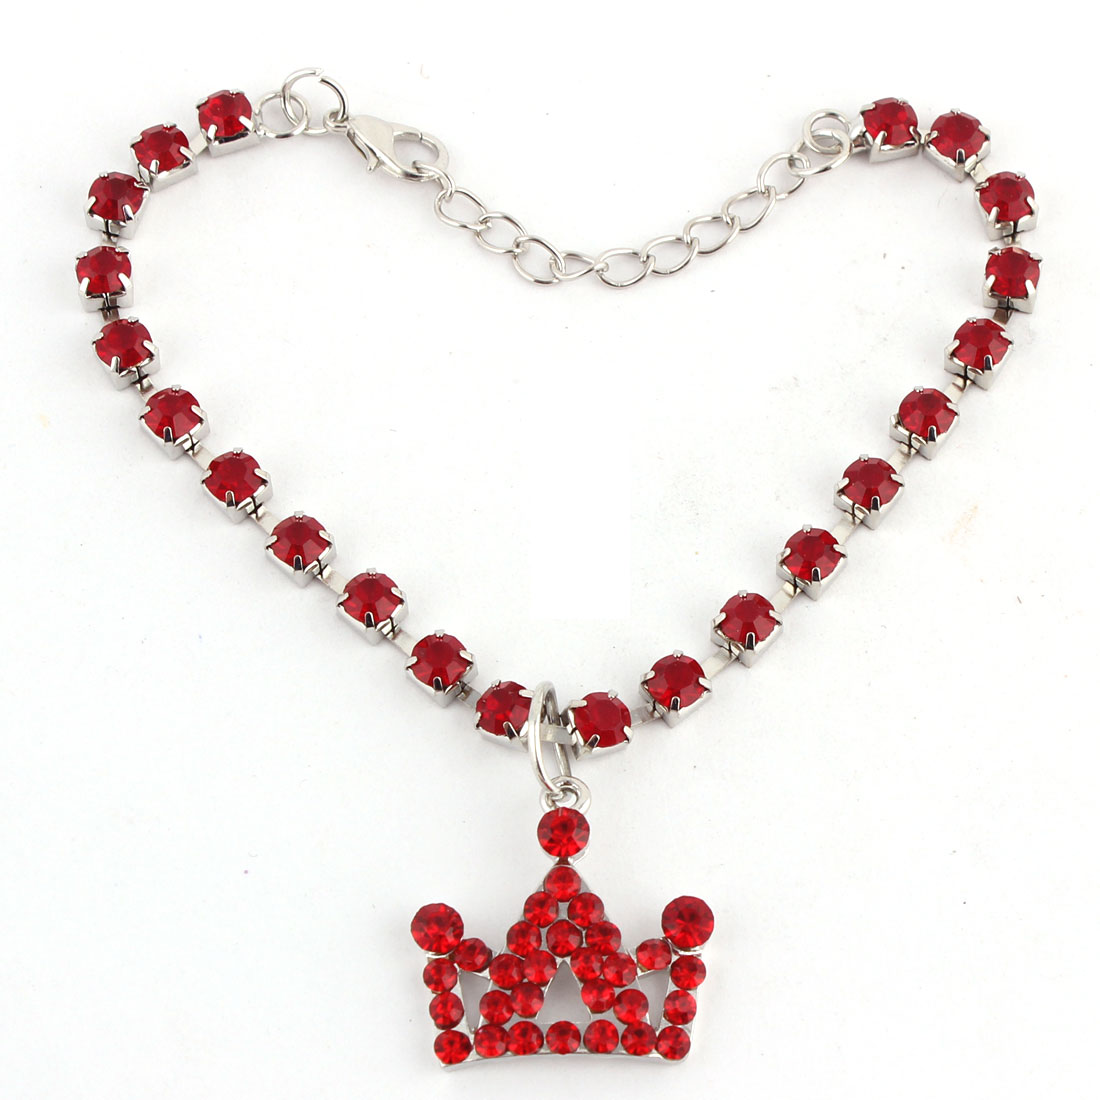 Dog Metal Beads Linked Rhinestone Inlaid Crown Shaped Pendant Decor Necklace Red